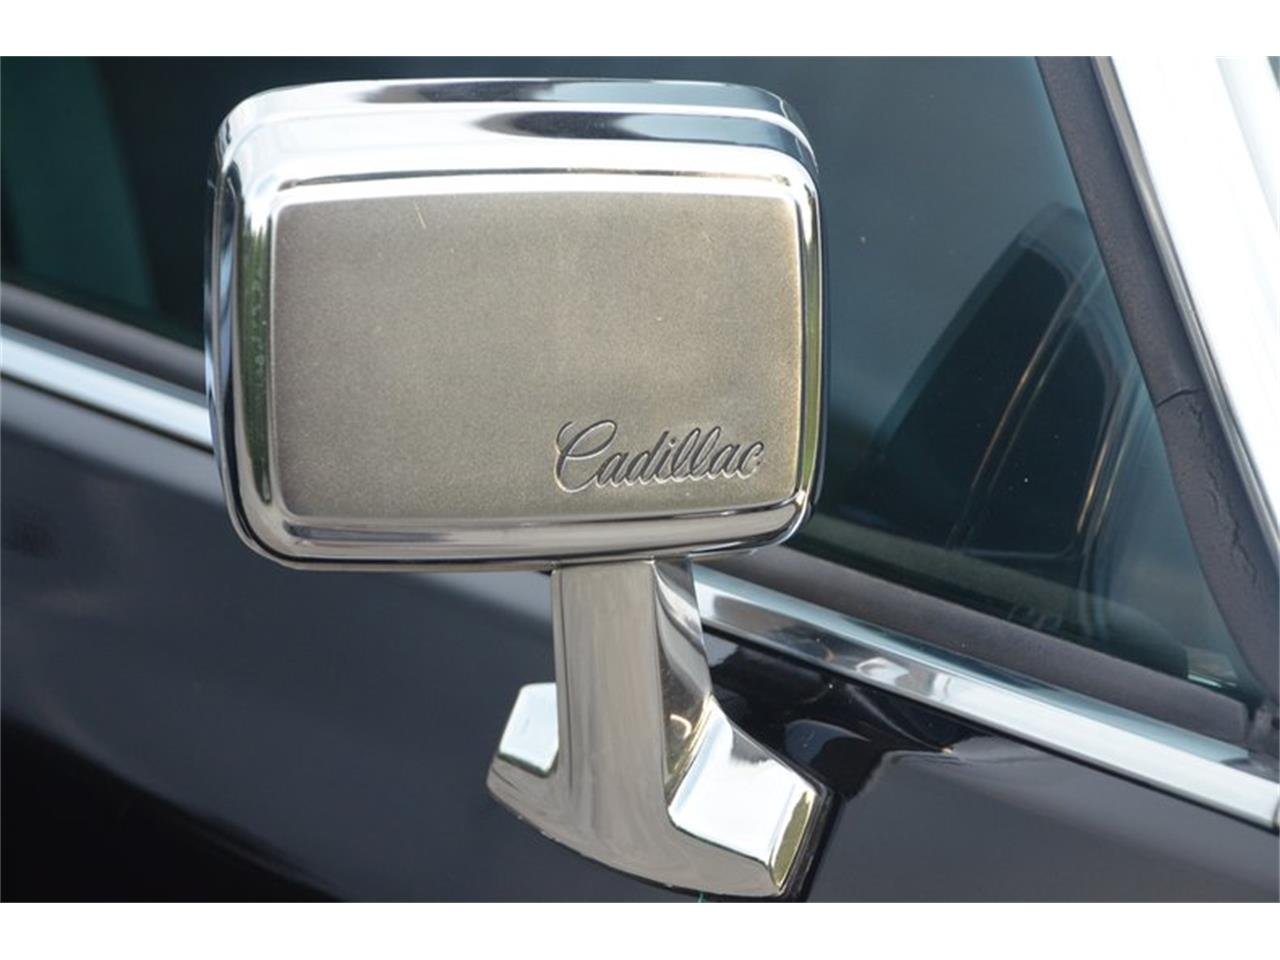 Large Picture of '76 Cadillac Brougham located in Tennessee - NUFI